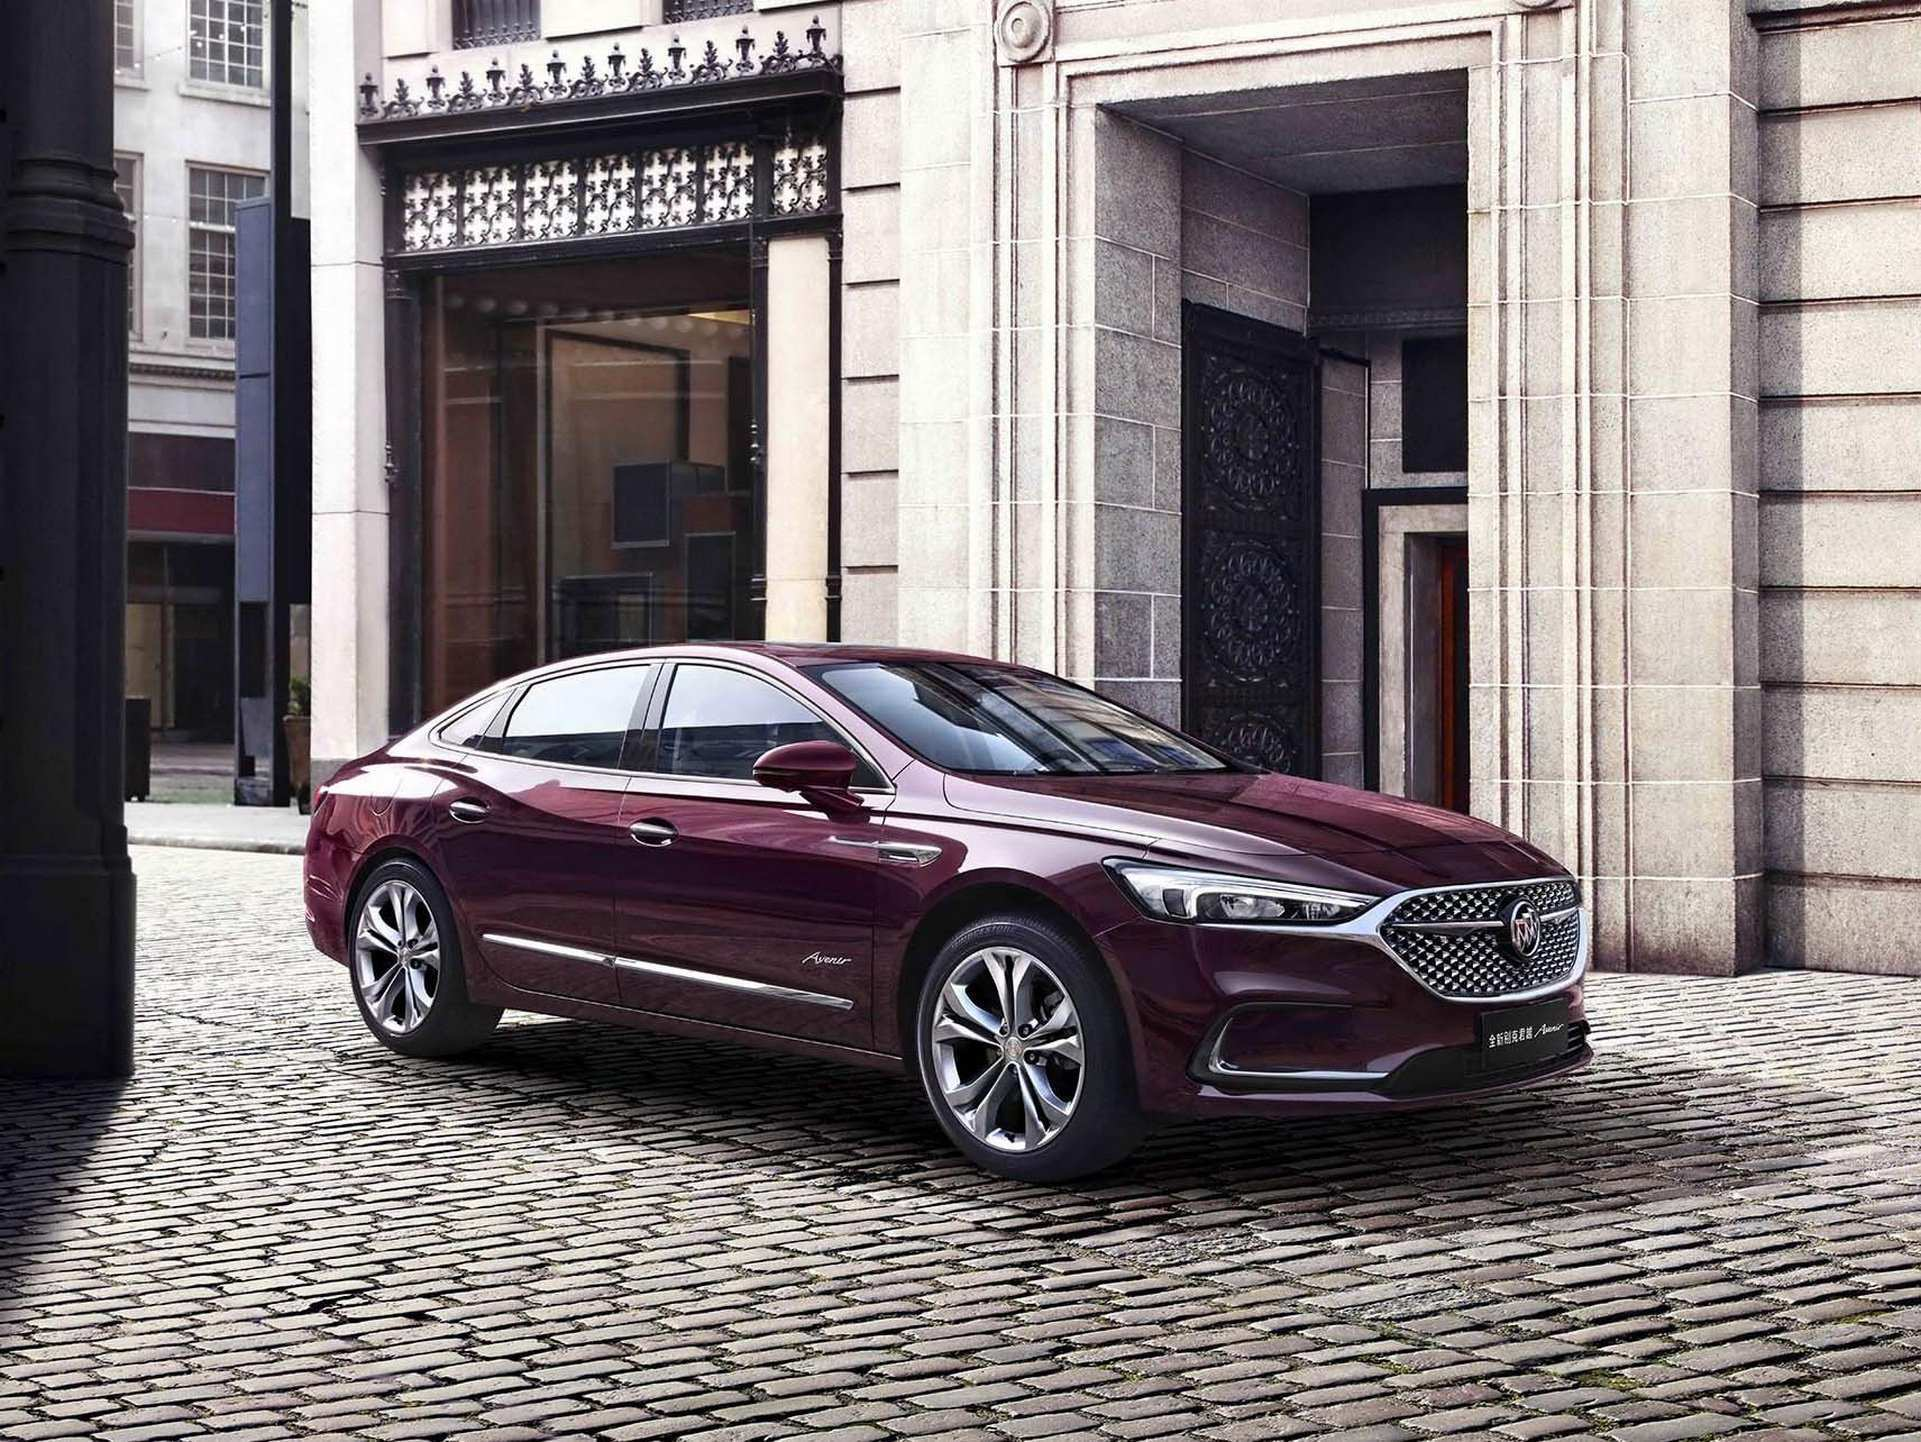 11 All New 2020 Buick Lacrosse China Wallpaper